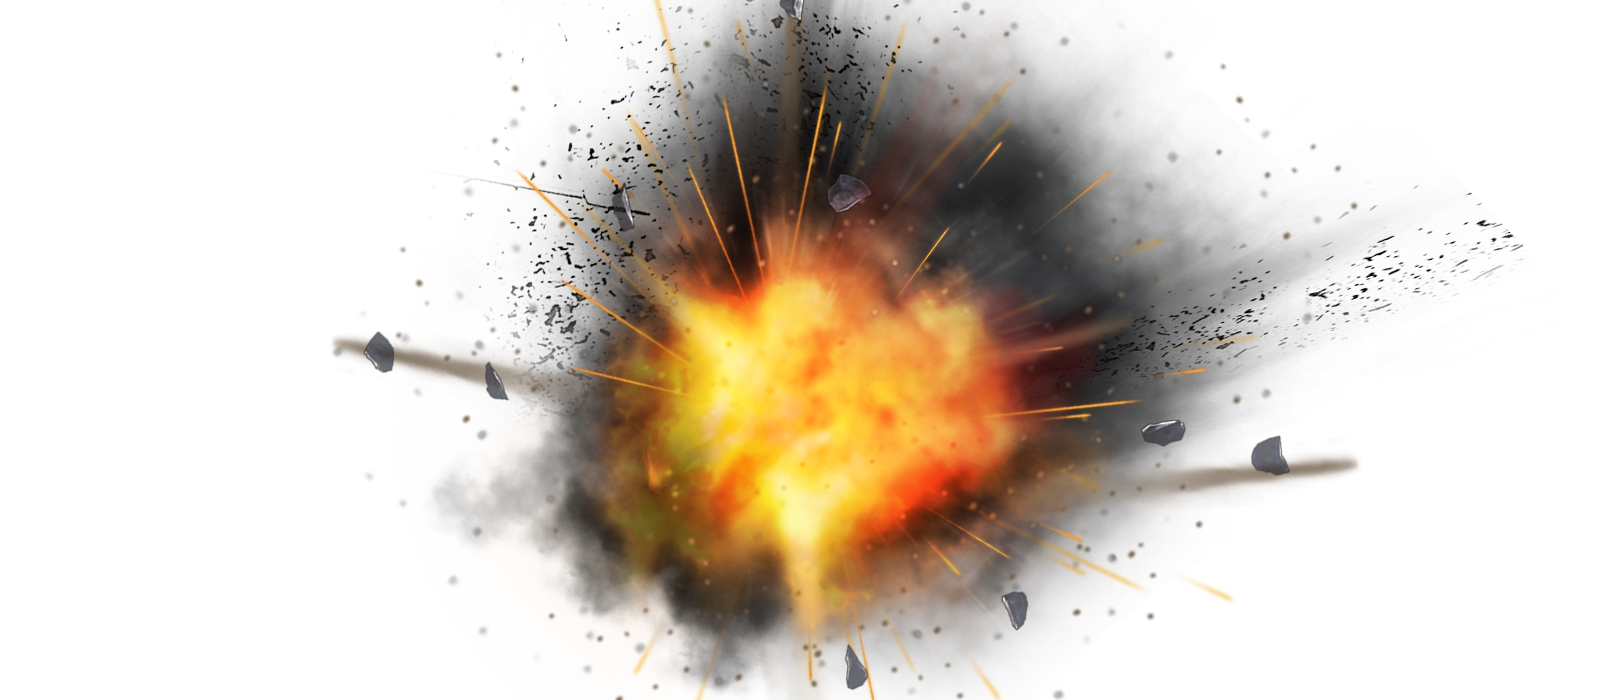 Download For Free download nuclear explosion PNG images